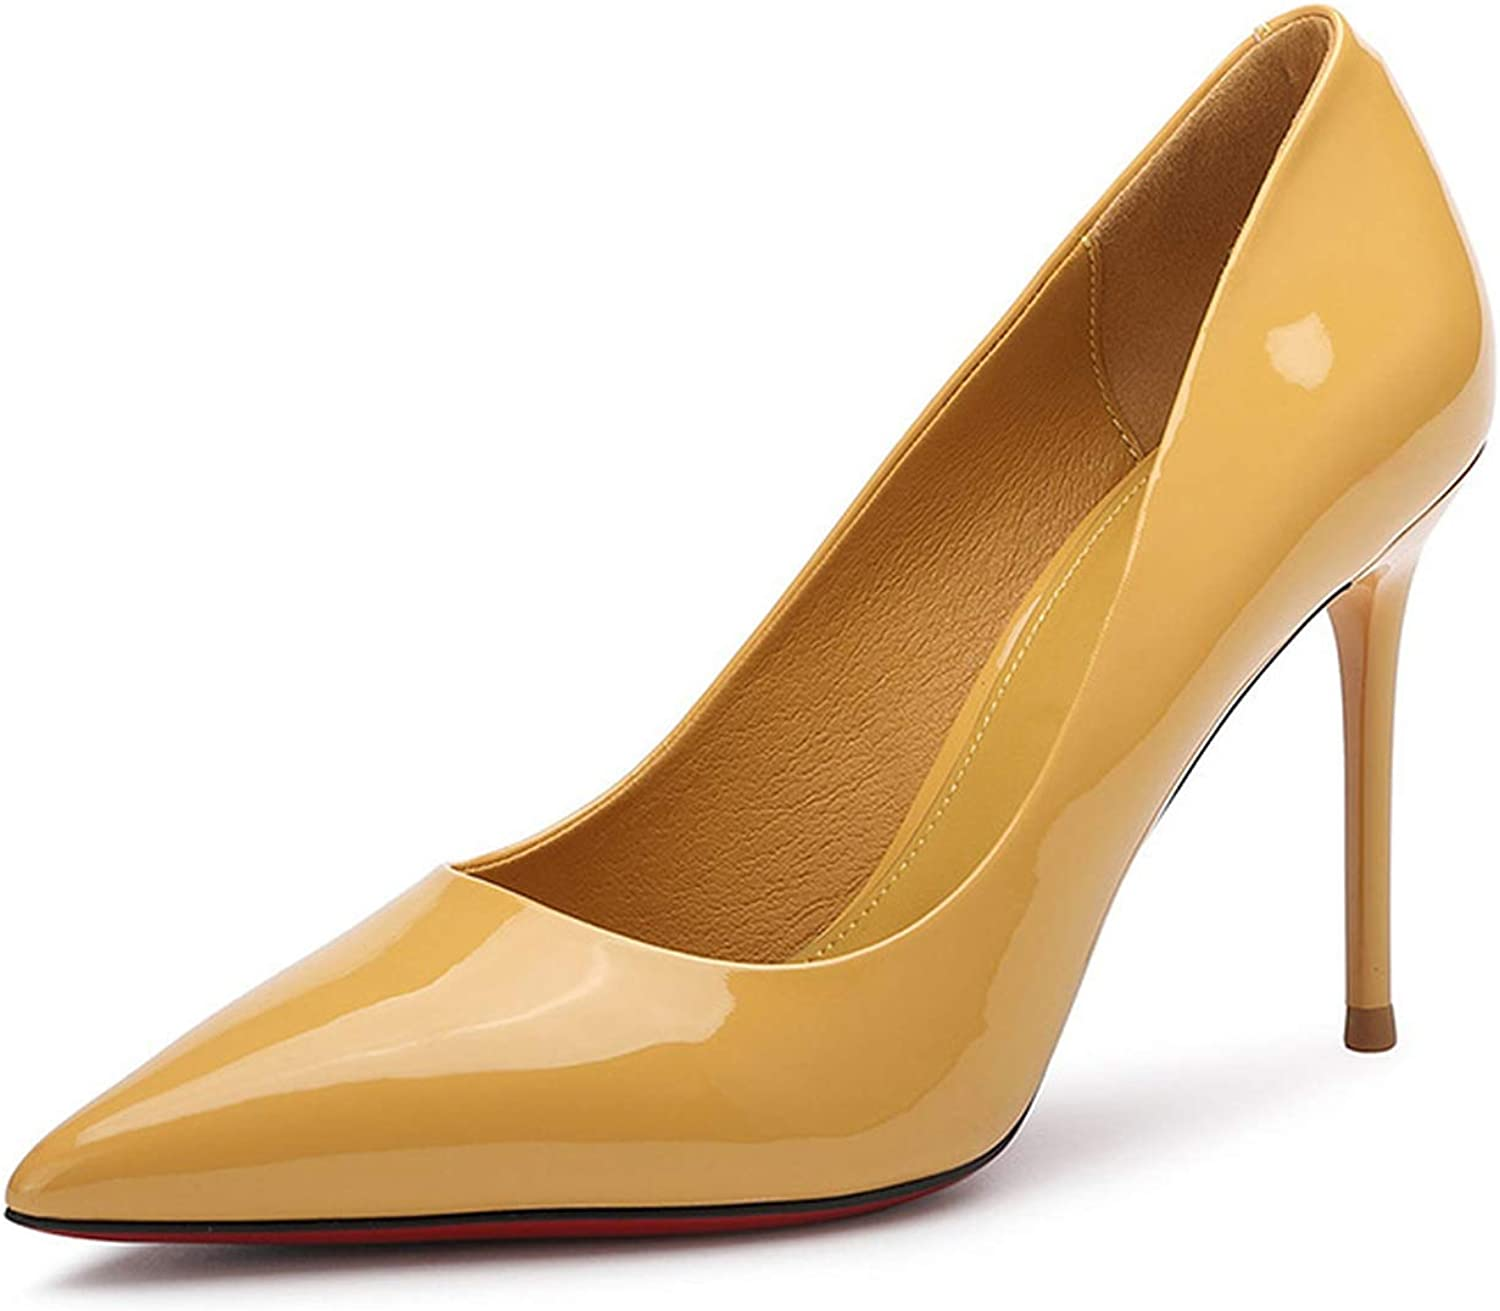 Super High Thin Heel Women Pumps Leather shoes Women High Heels Woman Party shoes